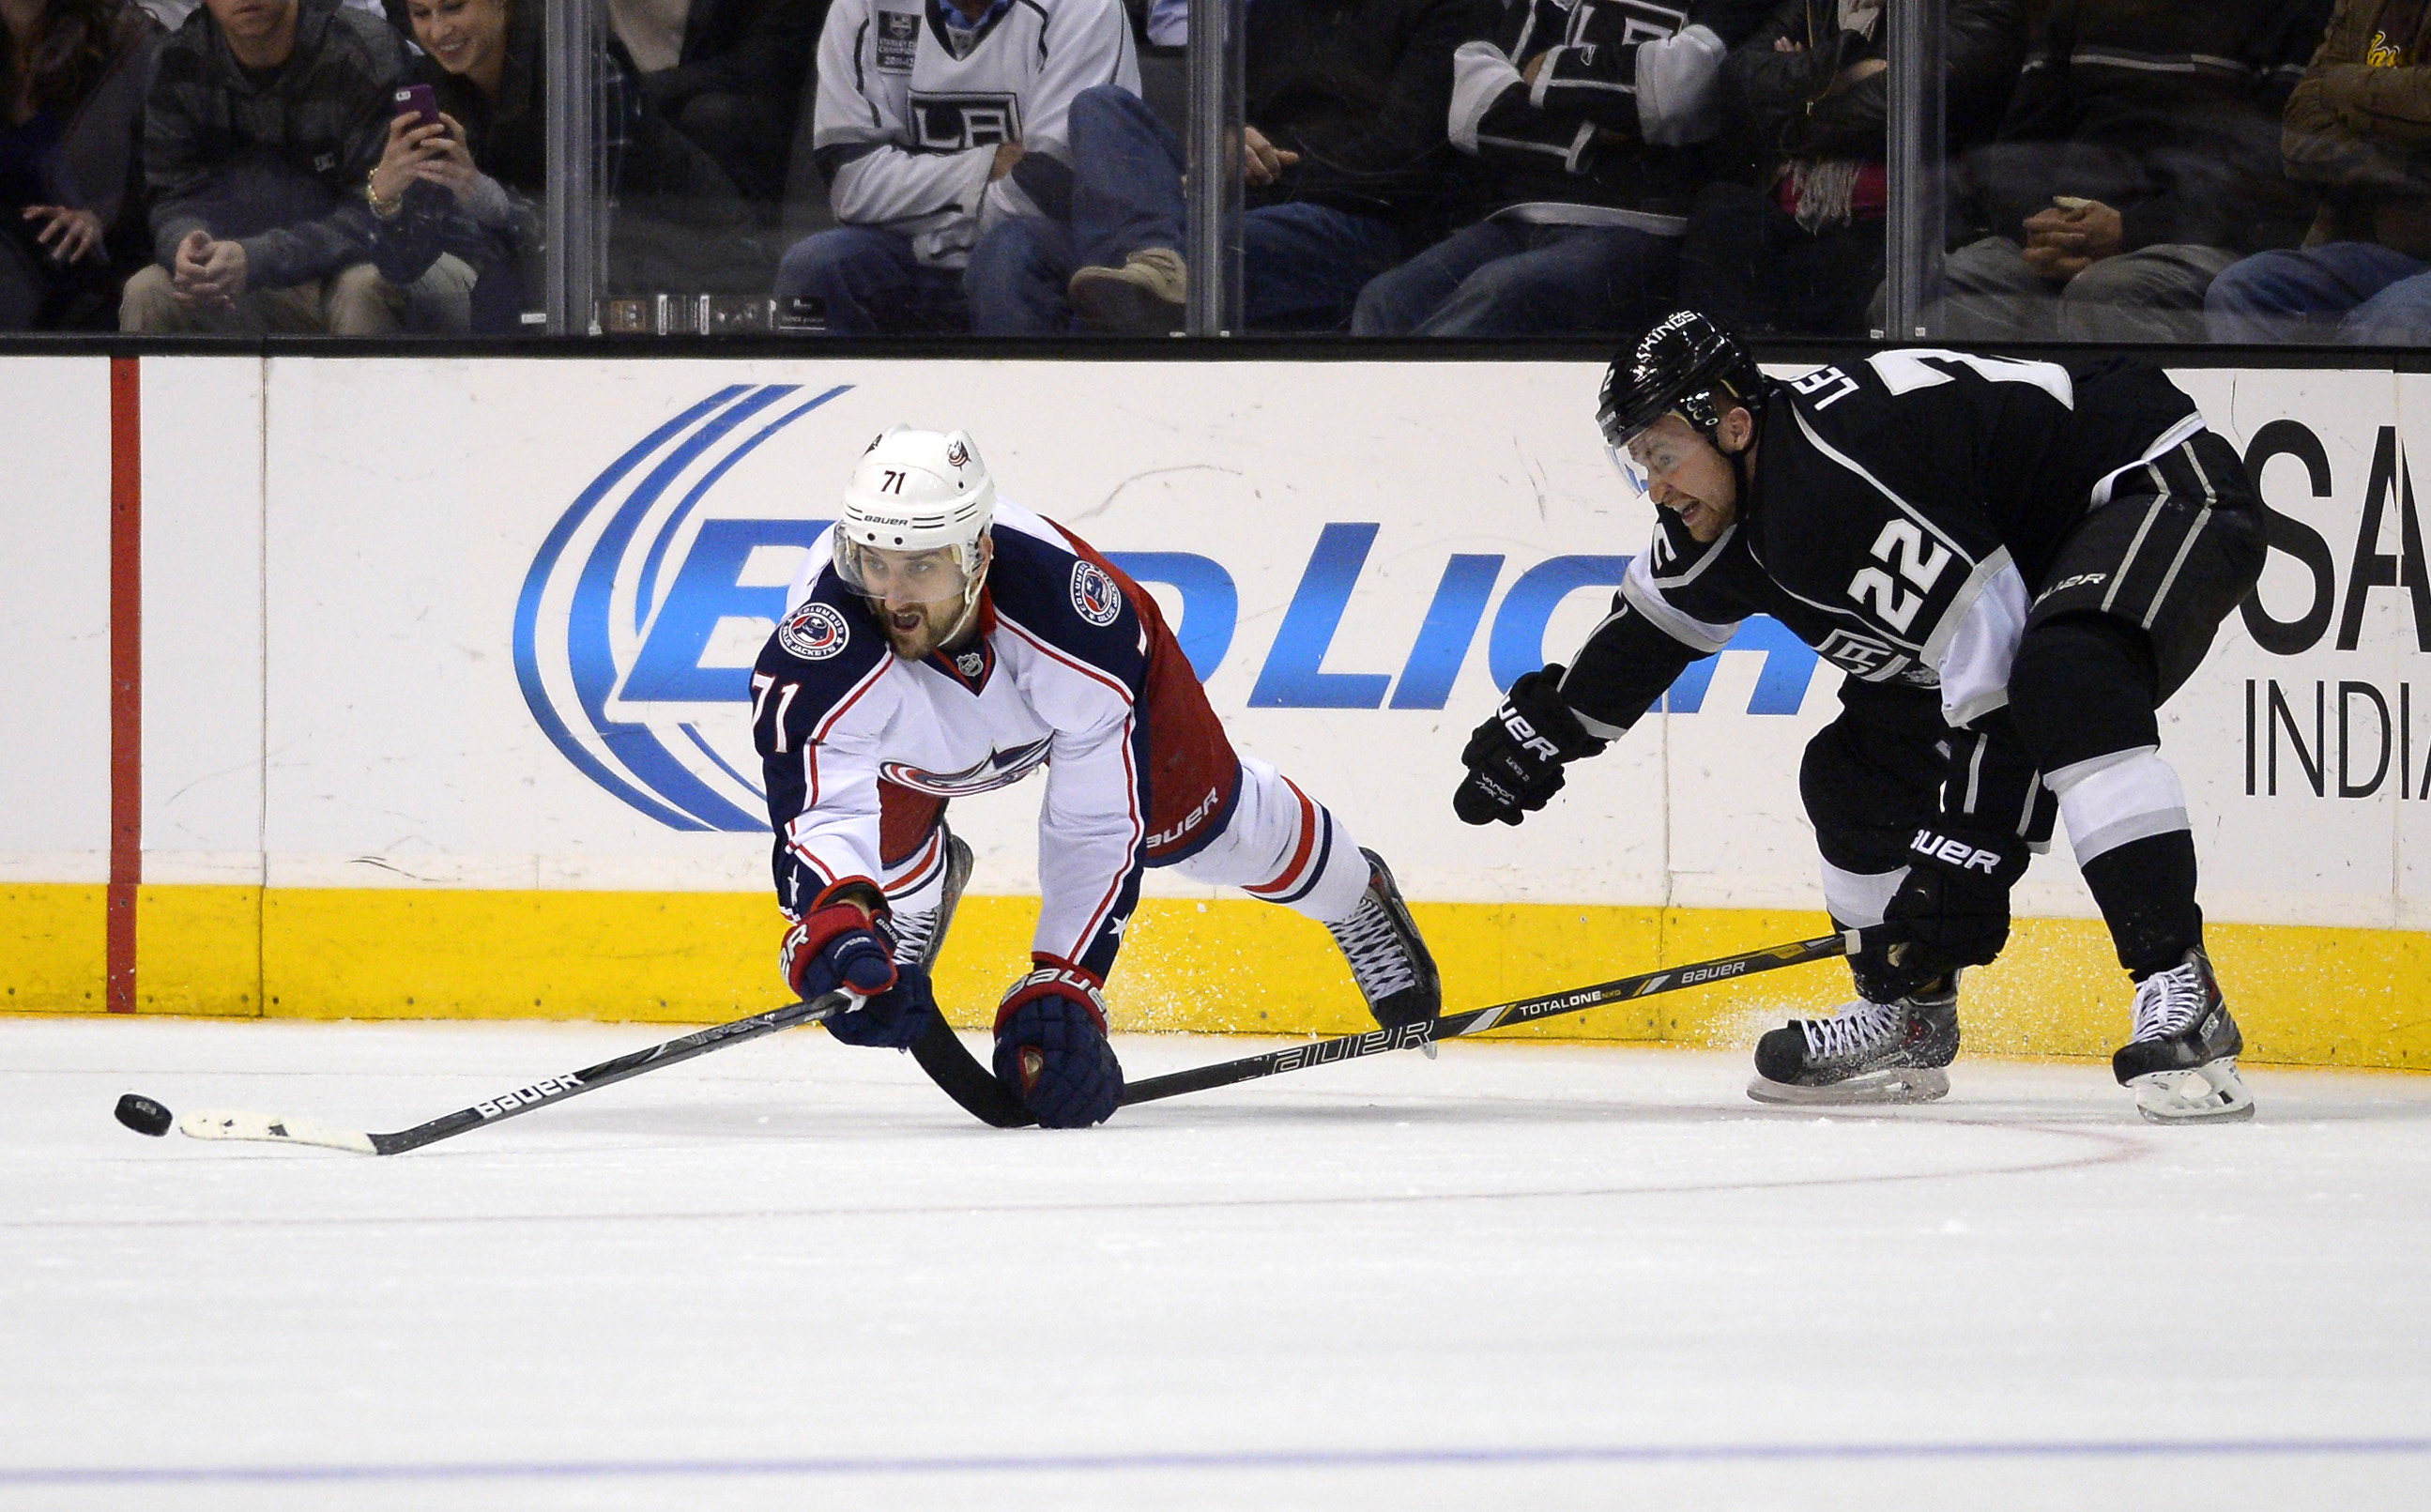 Columbus Blue Jackets left wing Nick Foligno, left, dives for the puck as Los Angeles Kings center Trevor Lewis reaches in during the third period of an NHL hockey game, Thursday, Feb. 6, 2014, in Los Angeles